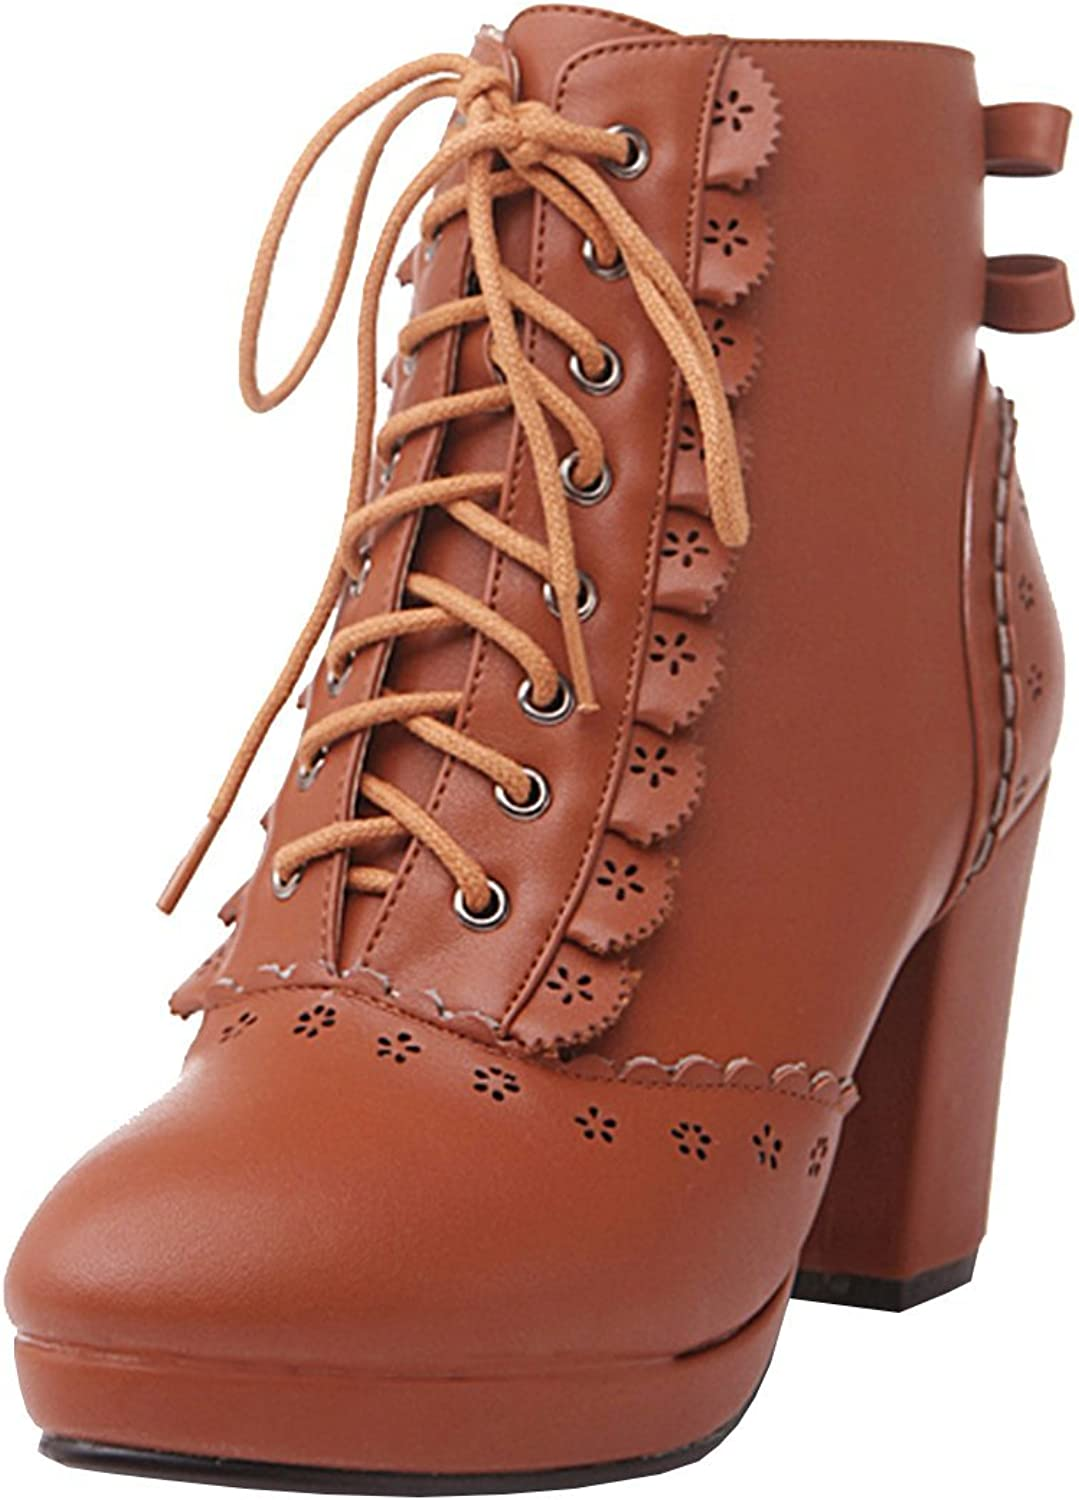 Artfaerie Women's Block High Heels Platform Lace Up Ankle Boots with Bows Sweet Retro shoes